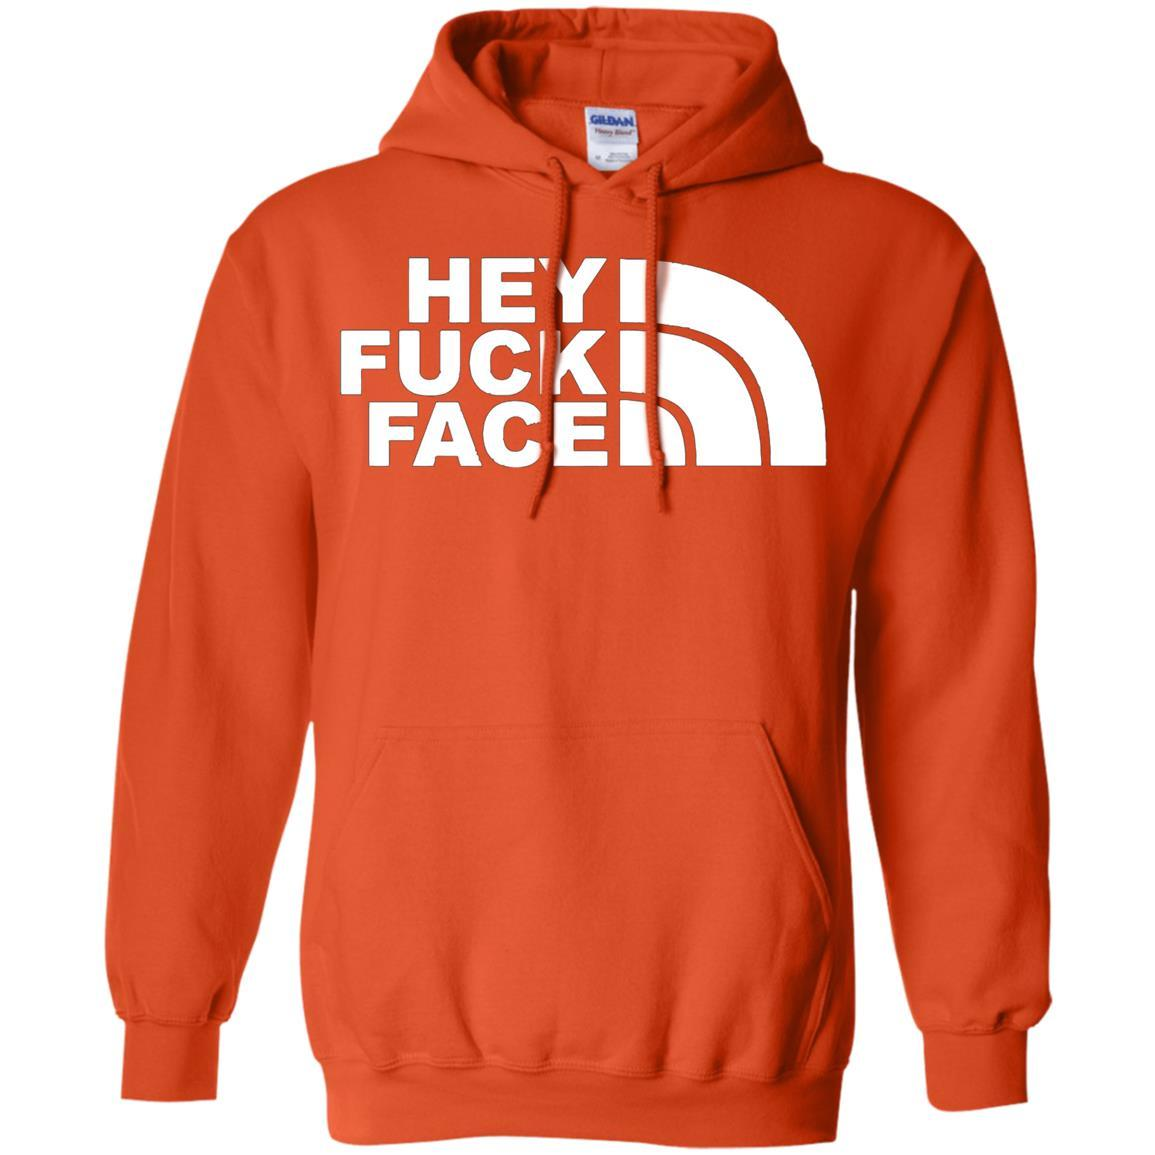 HEY FUCK FACE - Pullover Hoodie Orange / 5XL